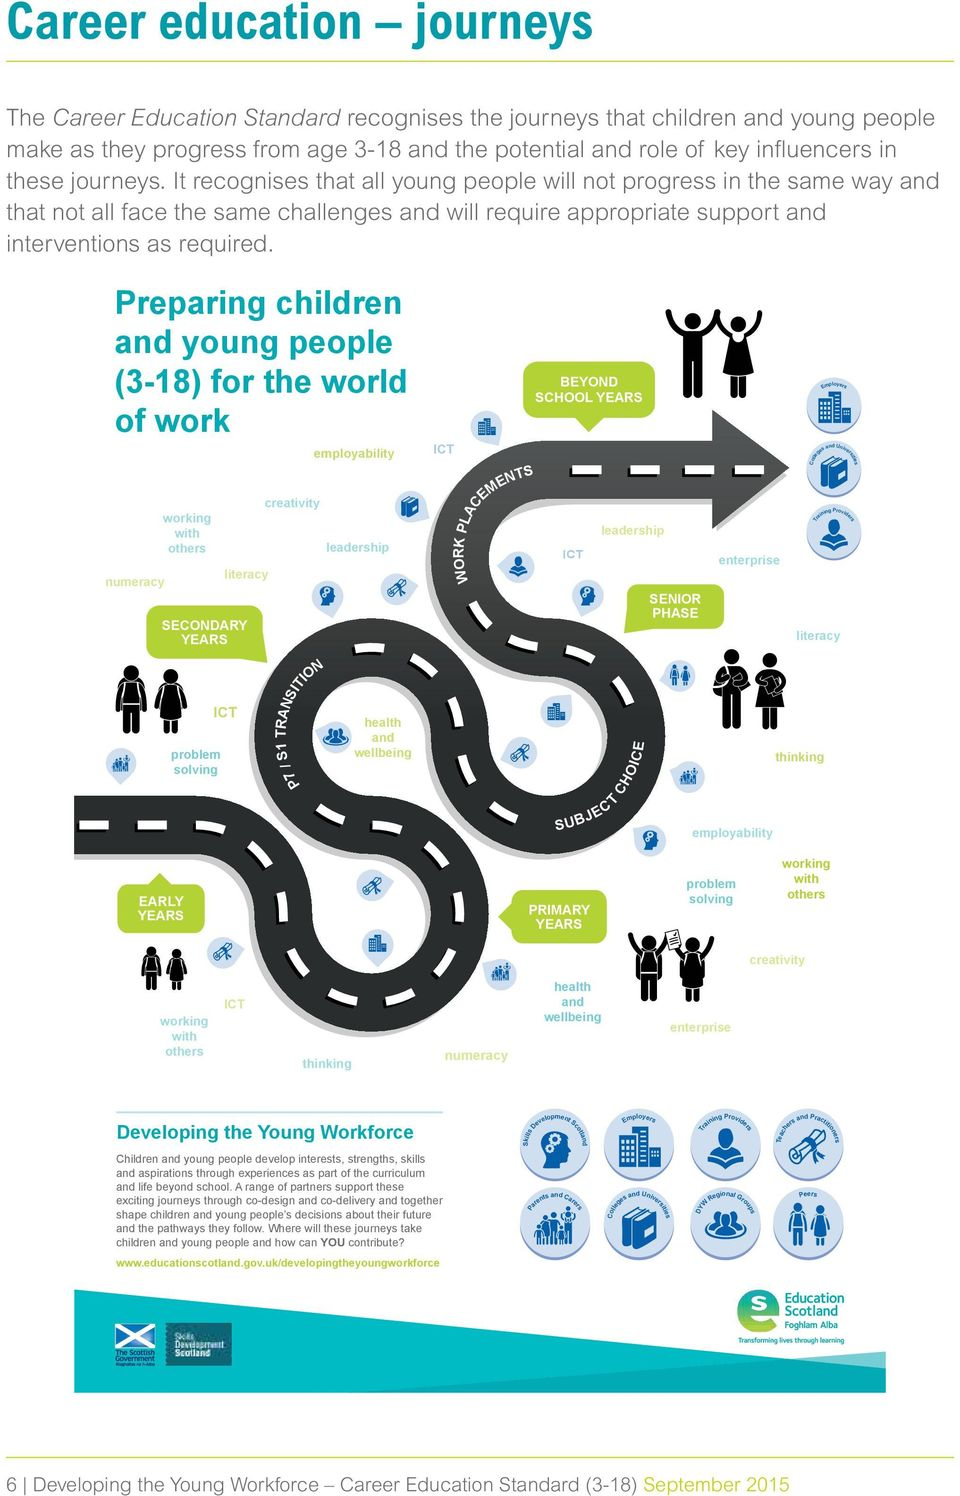 Preparing children and young people (3-18) for the world of work numeracy working with others literacy SECONDARY YEARS creativity employability leadership ICT WORK PLACEMENTS BEYOND SCHOOL YEARS ICT